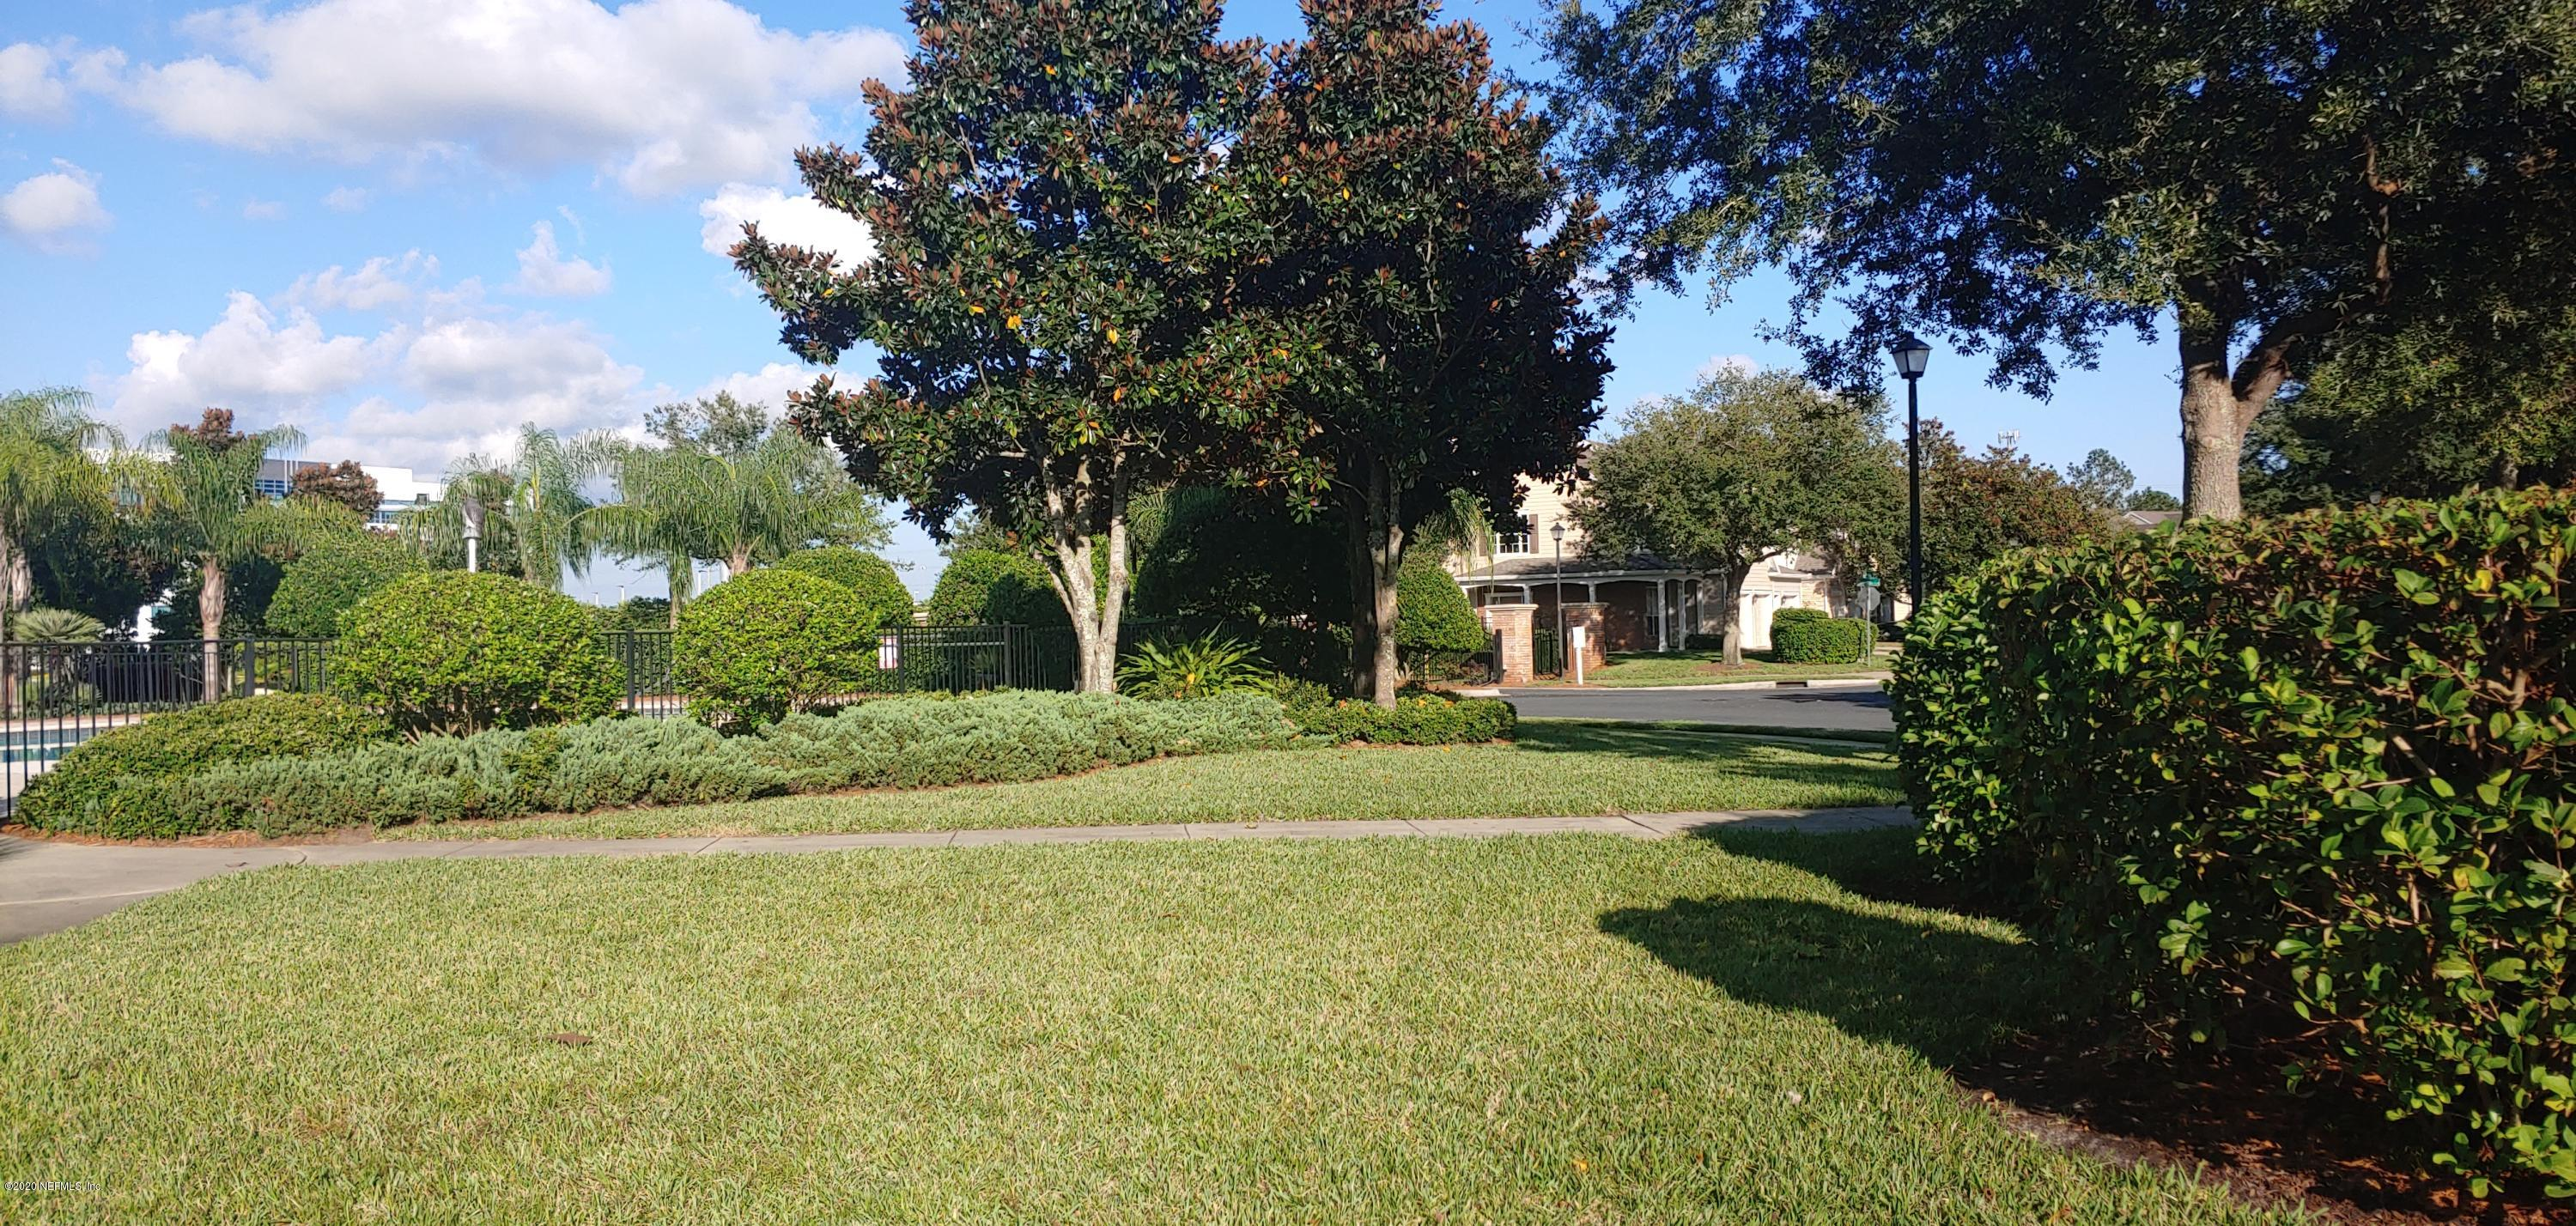 11136 FALLGATE POINT, JACKSONVILLE, FLORIDA 32256, 3 Bedrooms Bedrooms, ,2 BathroomsBathrooms,Rental,For Rent,FALLGATE POINT,1082827